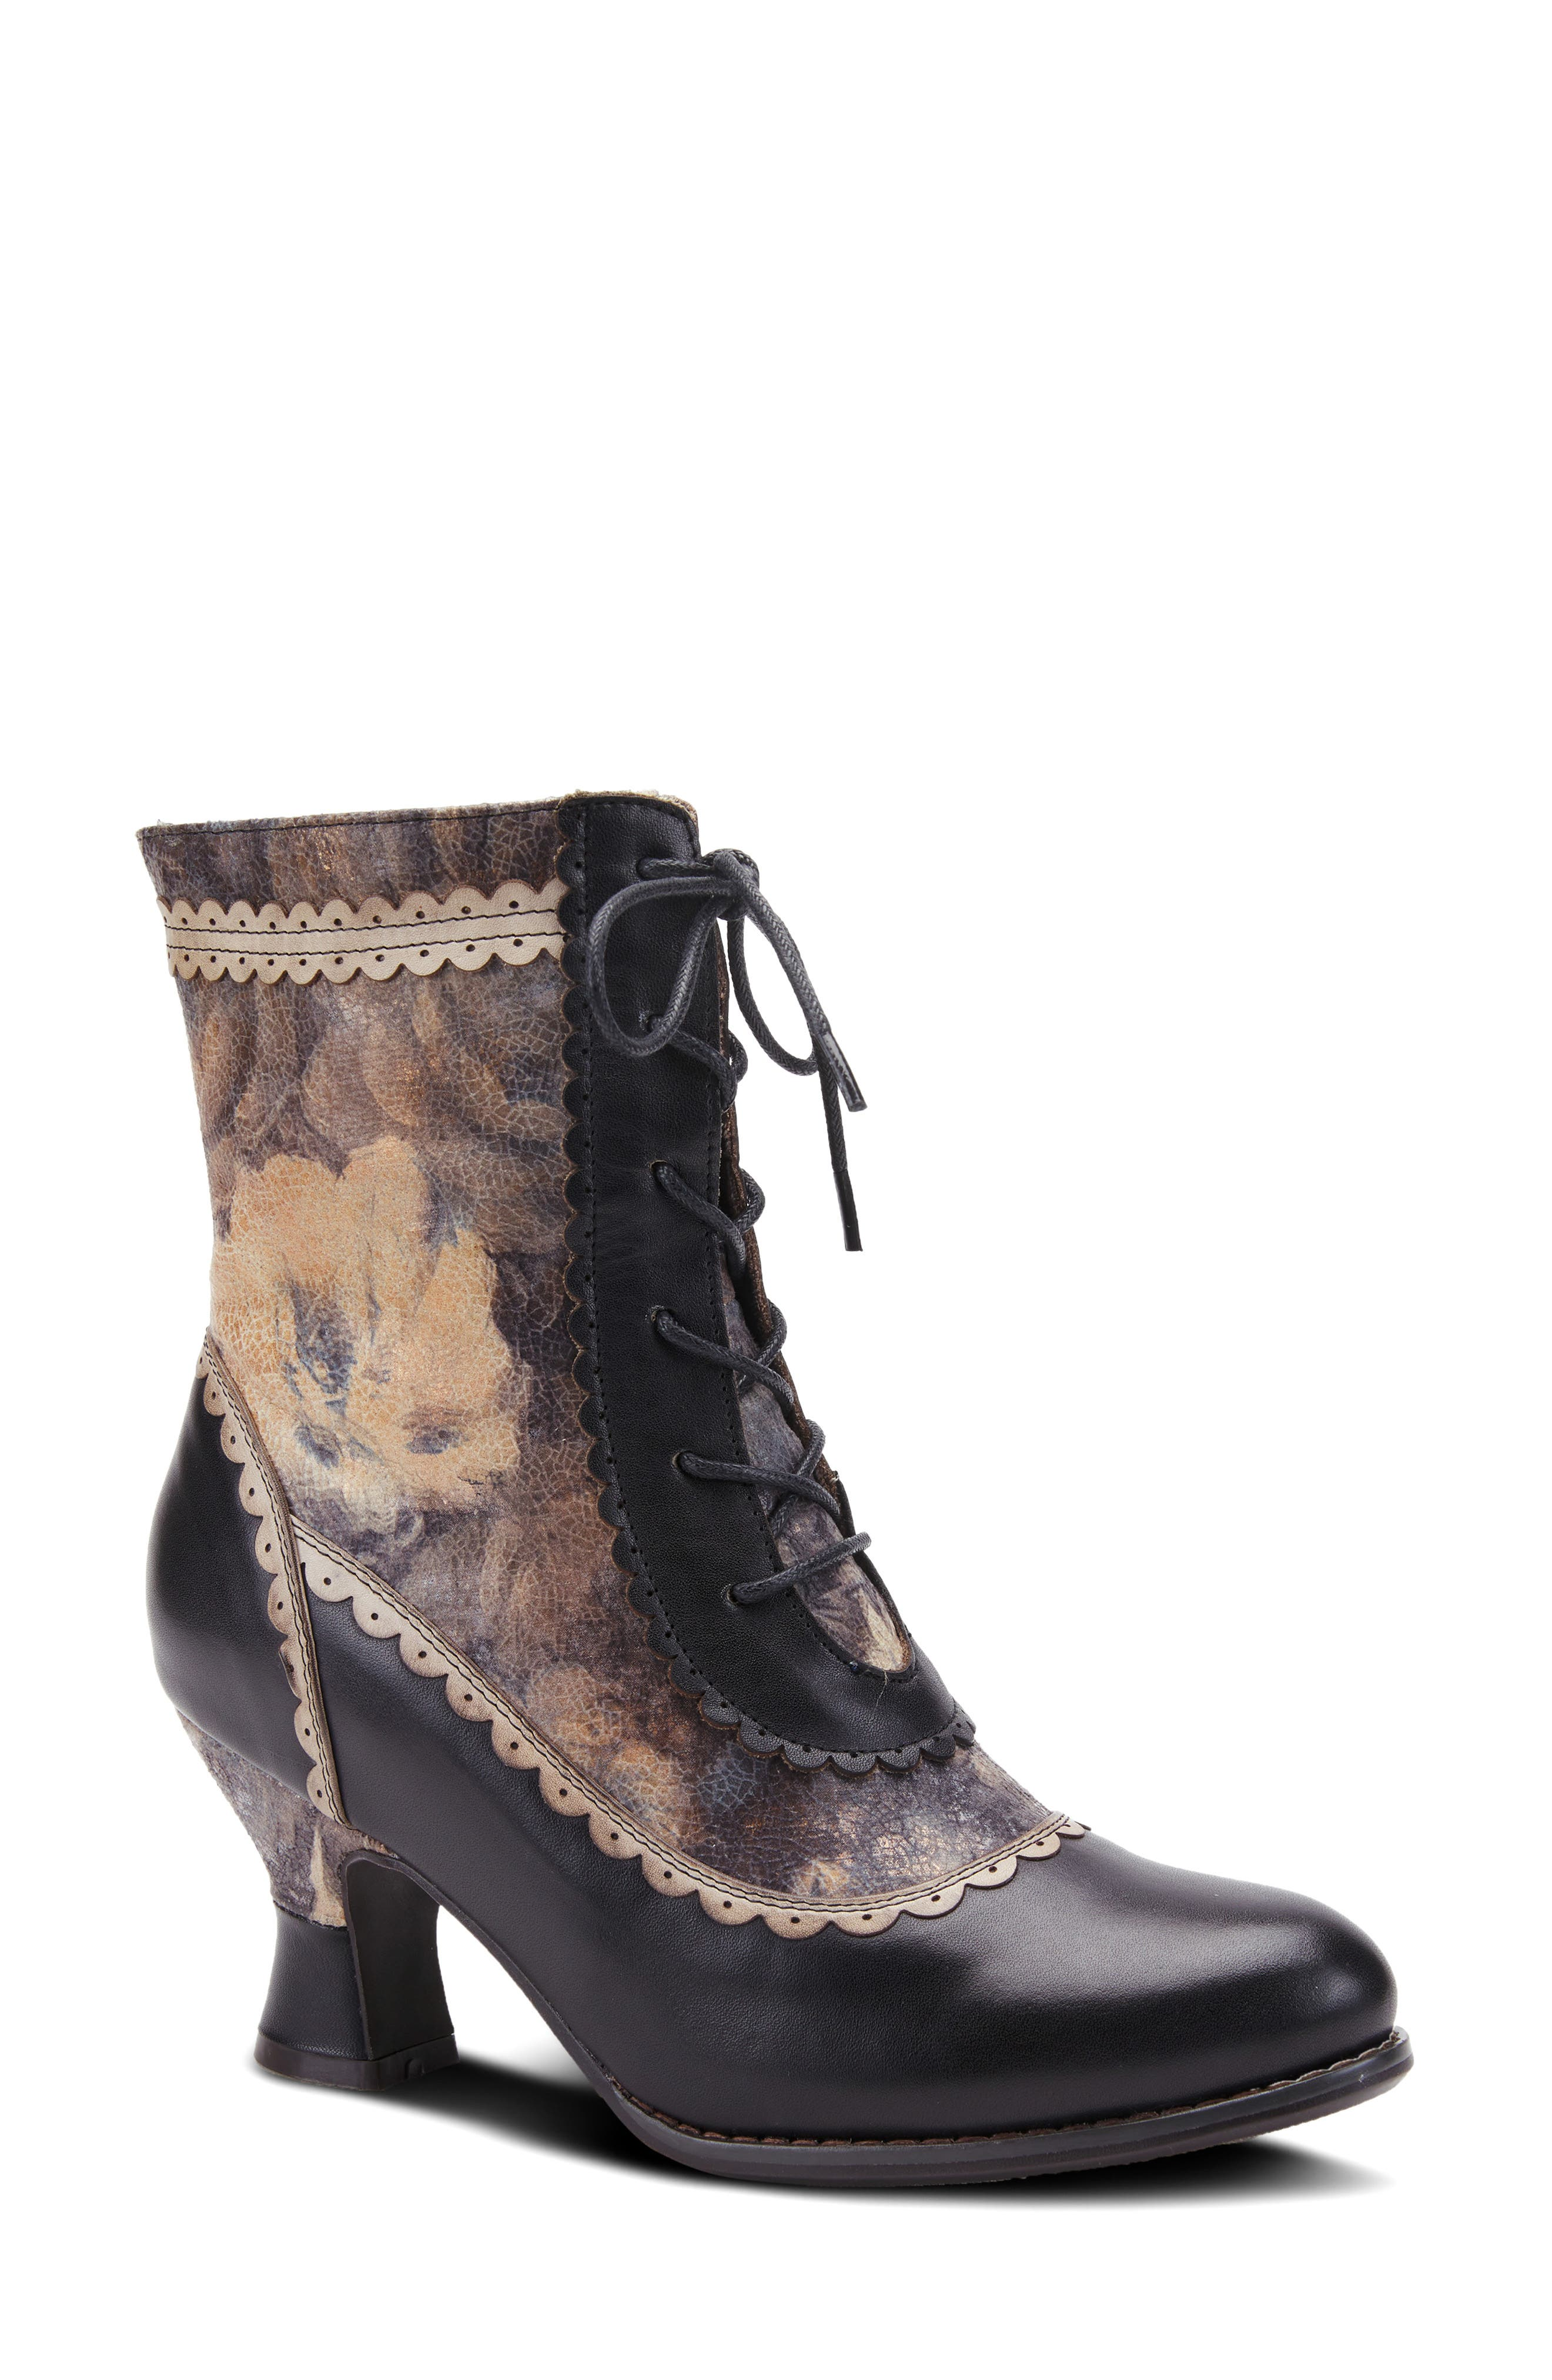 Hand-painted leather, scalloped trim and a decidedly vintage silhouette define this striking lace-up bootie outfitted with a comfortably cushioned footbed. Style Name:L\\\'Artiste Bewitch Floral Bootie (Women). Style Number: 6117373. Available in stores.